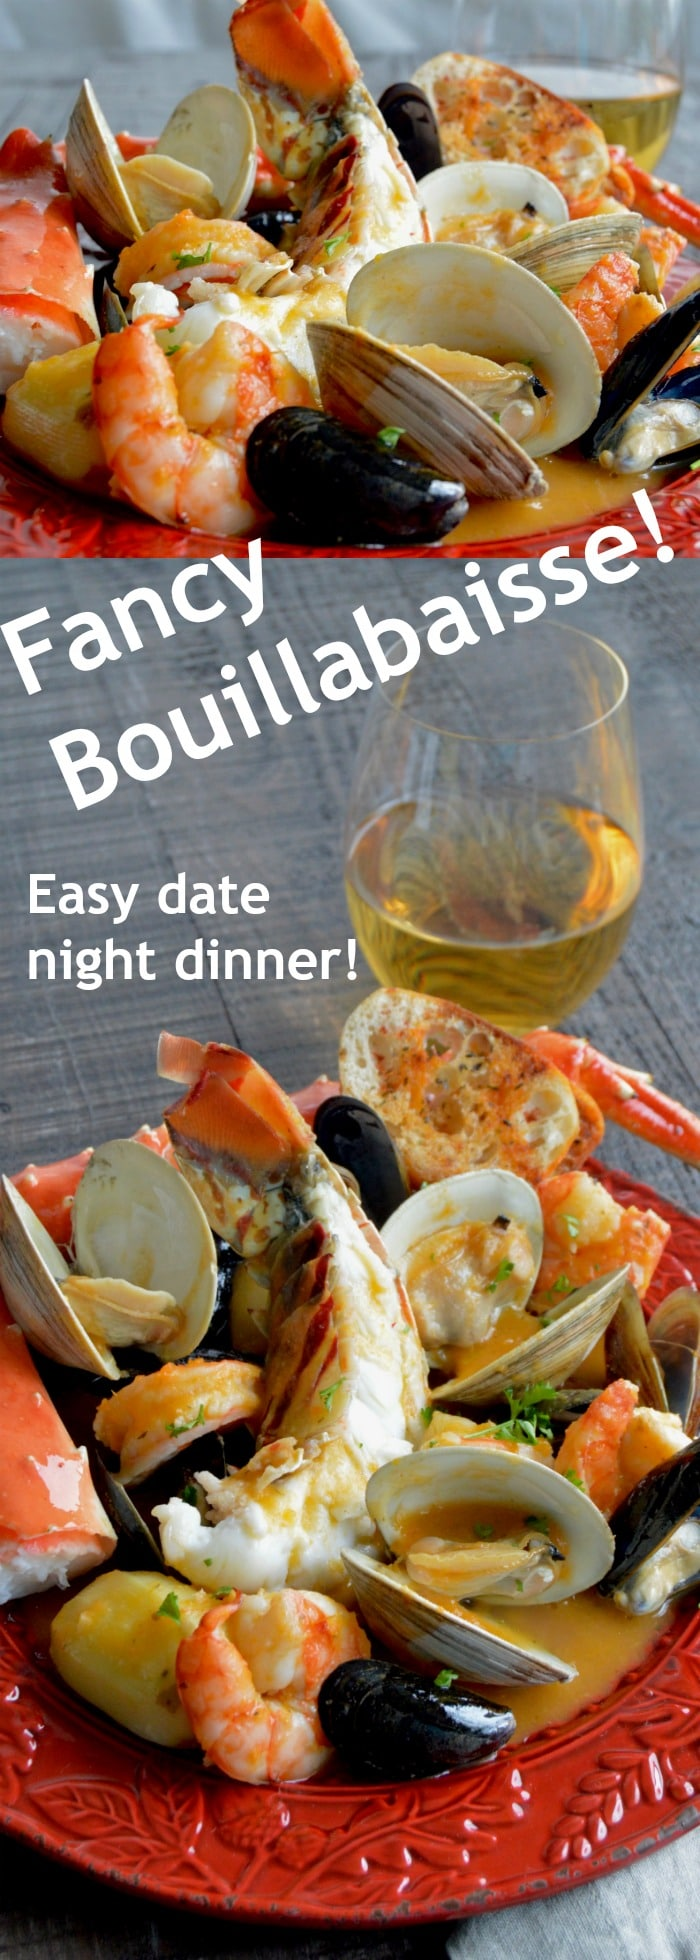 ancy shellfish, lobster crab, shrimp mussels and crab in a very flavorful homemade broth that can be on the table in less than 45 minutes!